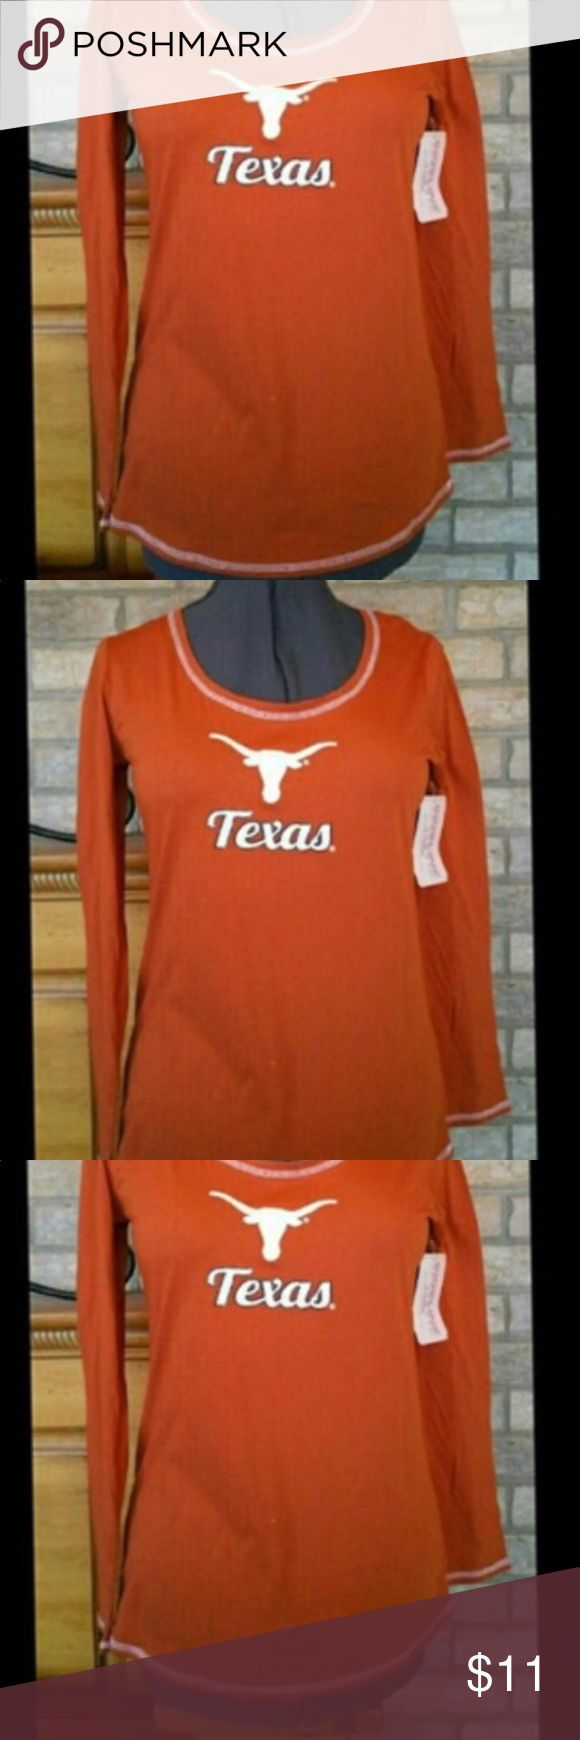 NEW UT UNIVERSITY OF TEXAS LONGHORN LONG SLEEVE NEW UT UNIVERSITY OF TEXAS LONGHORN LONG SLEEVE JUNIOR SIZE LARGE BACK HAS NO DESIGN BOTTOM HEM IS SLIGHTLY CURVED SMOKE FREE BUT PET FRIENDLY HOUSE Tops Tees - Long Sleeve